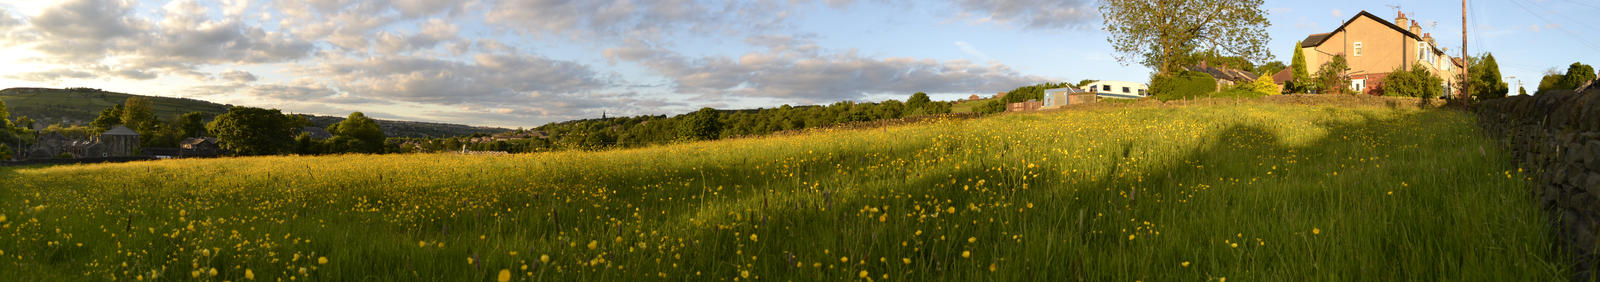 Sunny Buttercup Field Panorama by Septolum